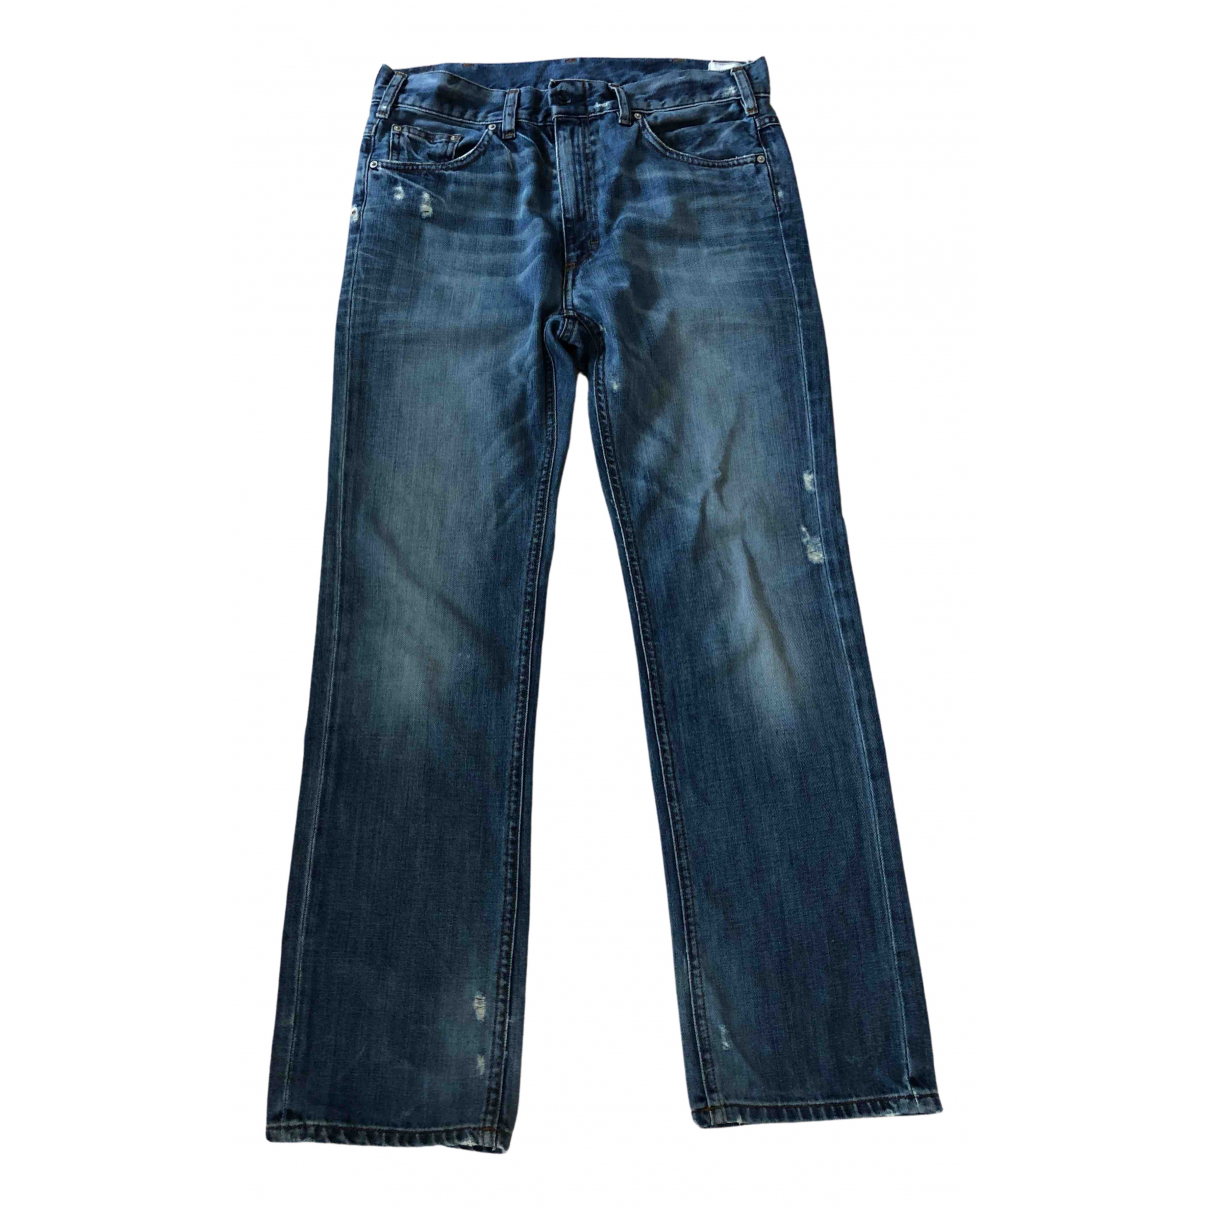 Mauro Grifoni N Denim - Jeans Jeans for Women 26 US